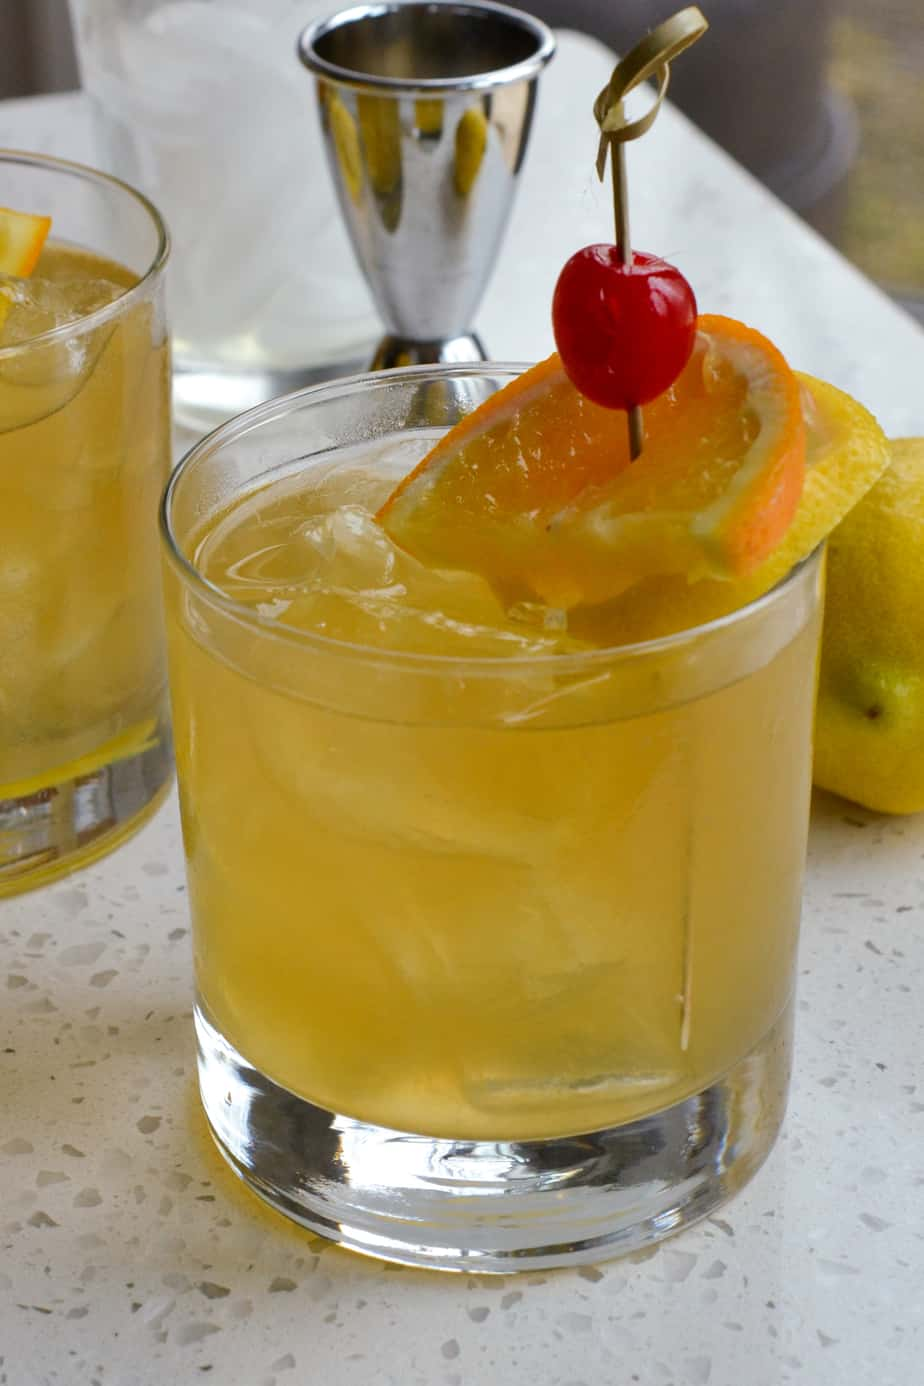 Whiskey sour cocktail garnished with an orange slice, lemon slice, and cherry.